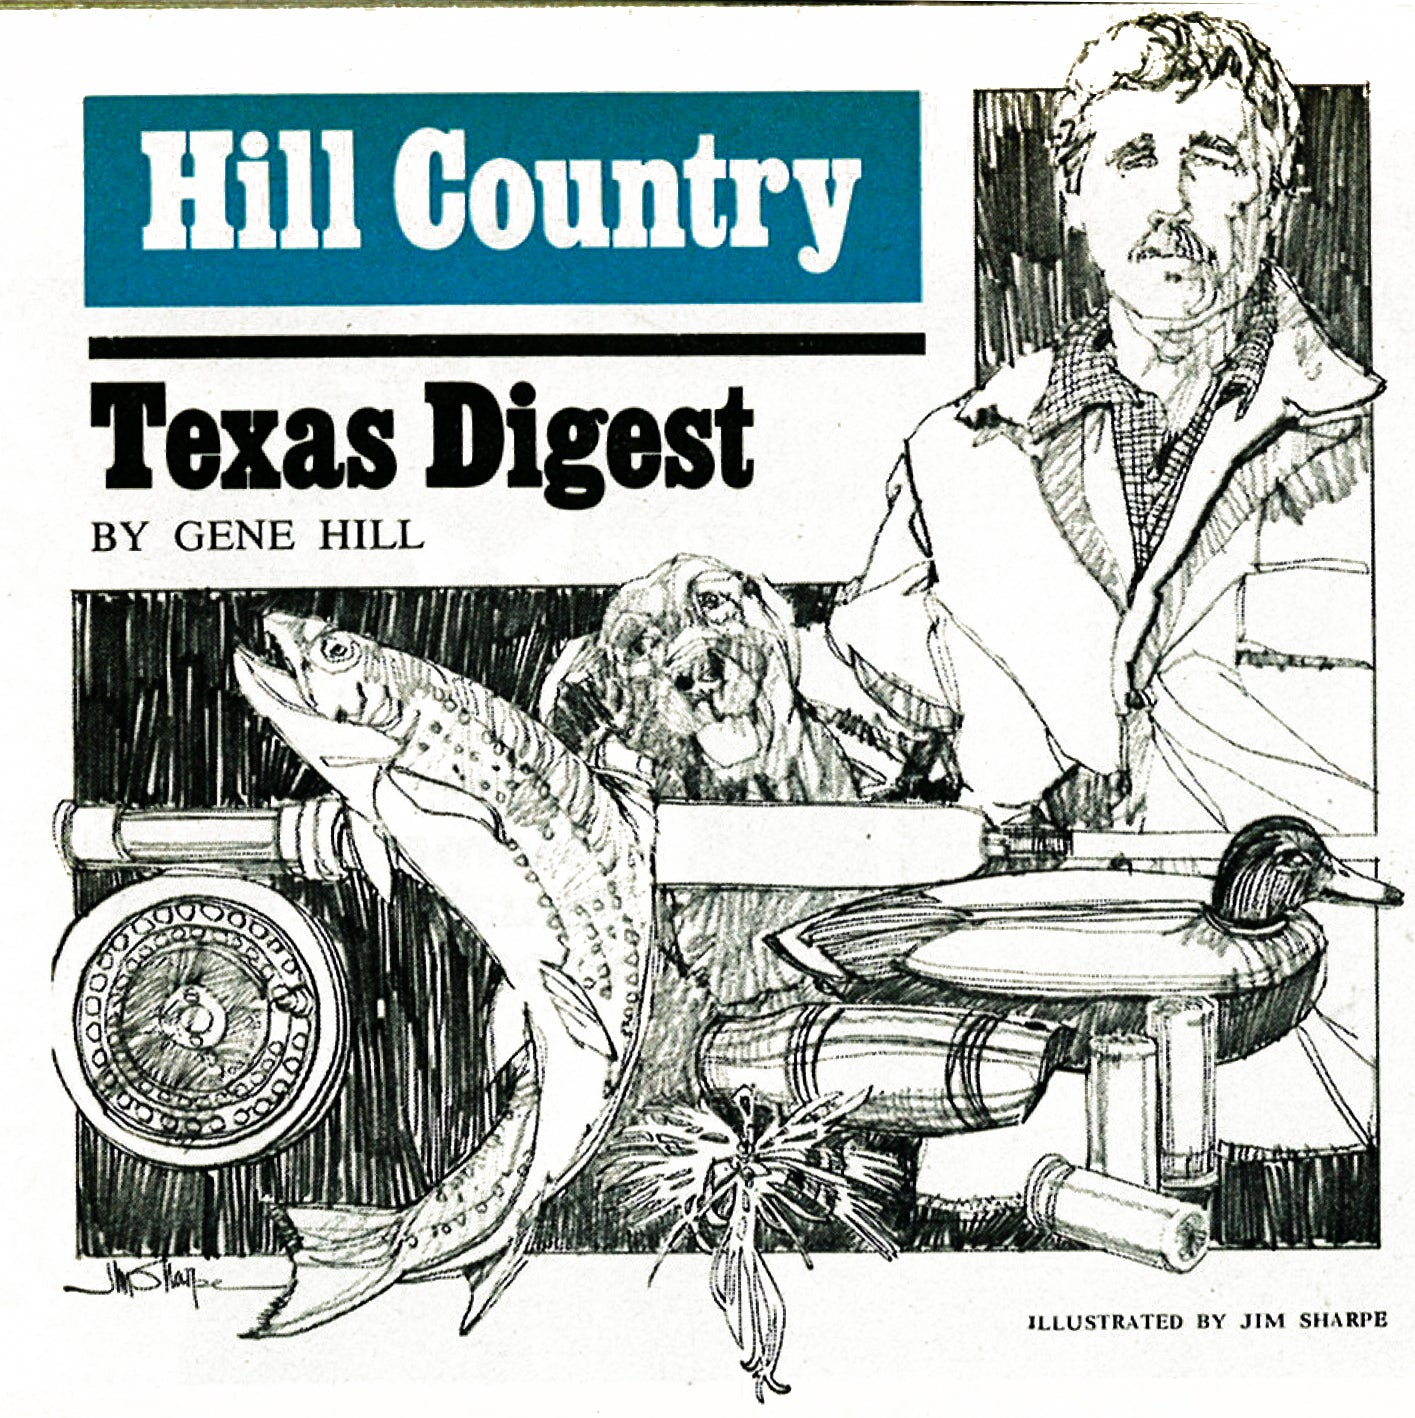 A clipping of Hill Country Texas Digest from Field & Stream Magazine.